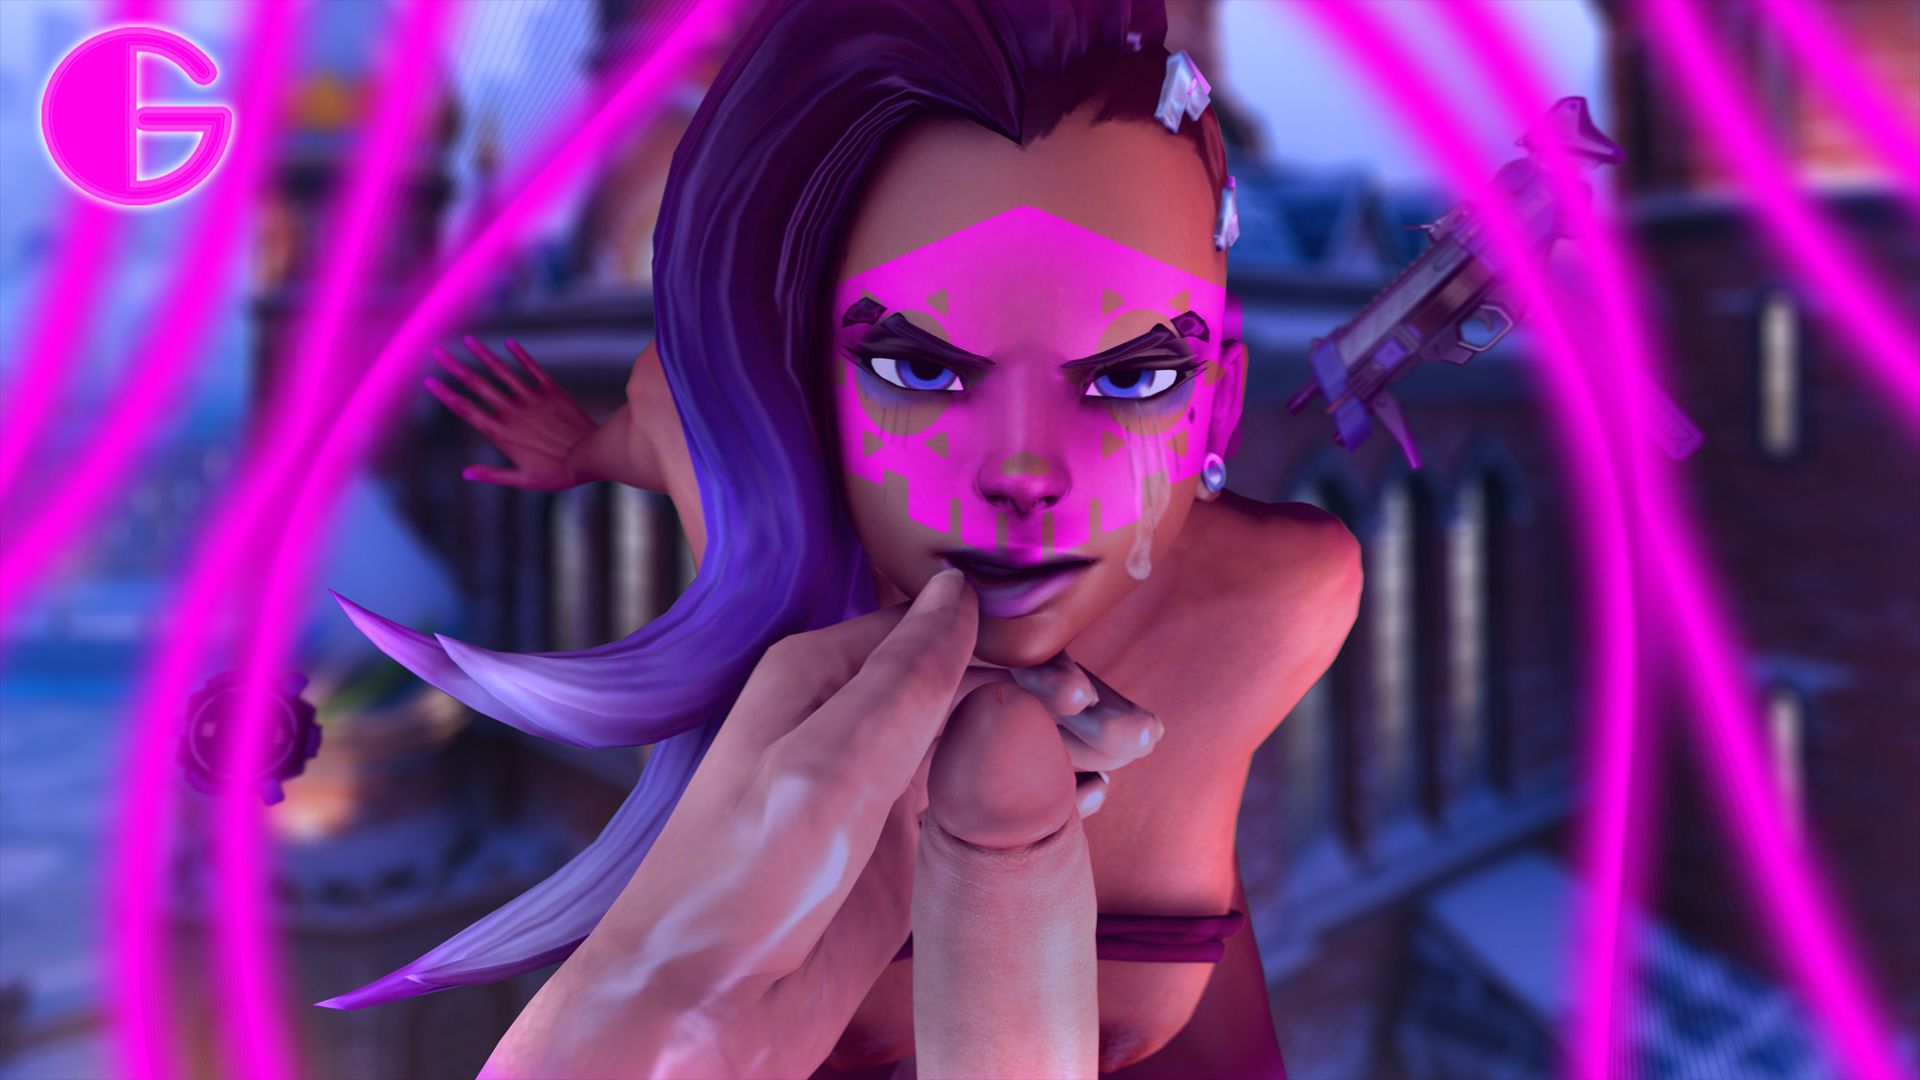 2076323 - NSFW_comix Overlook Sombra its-gergless source_filmmaker